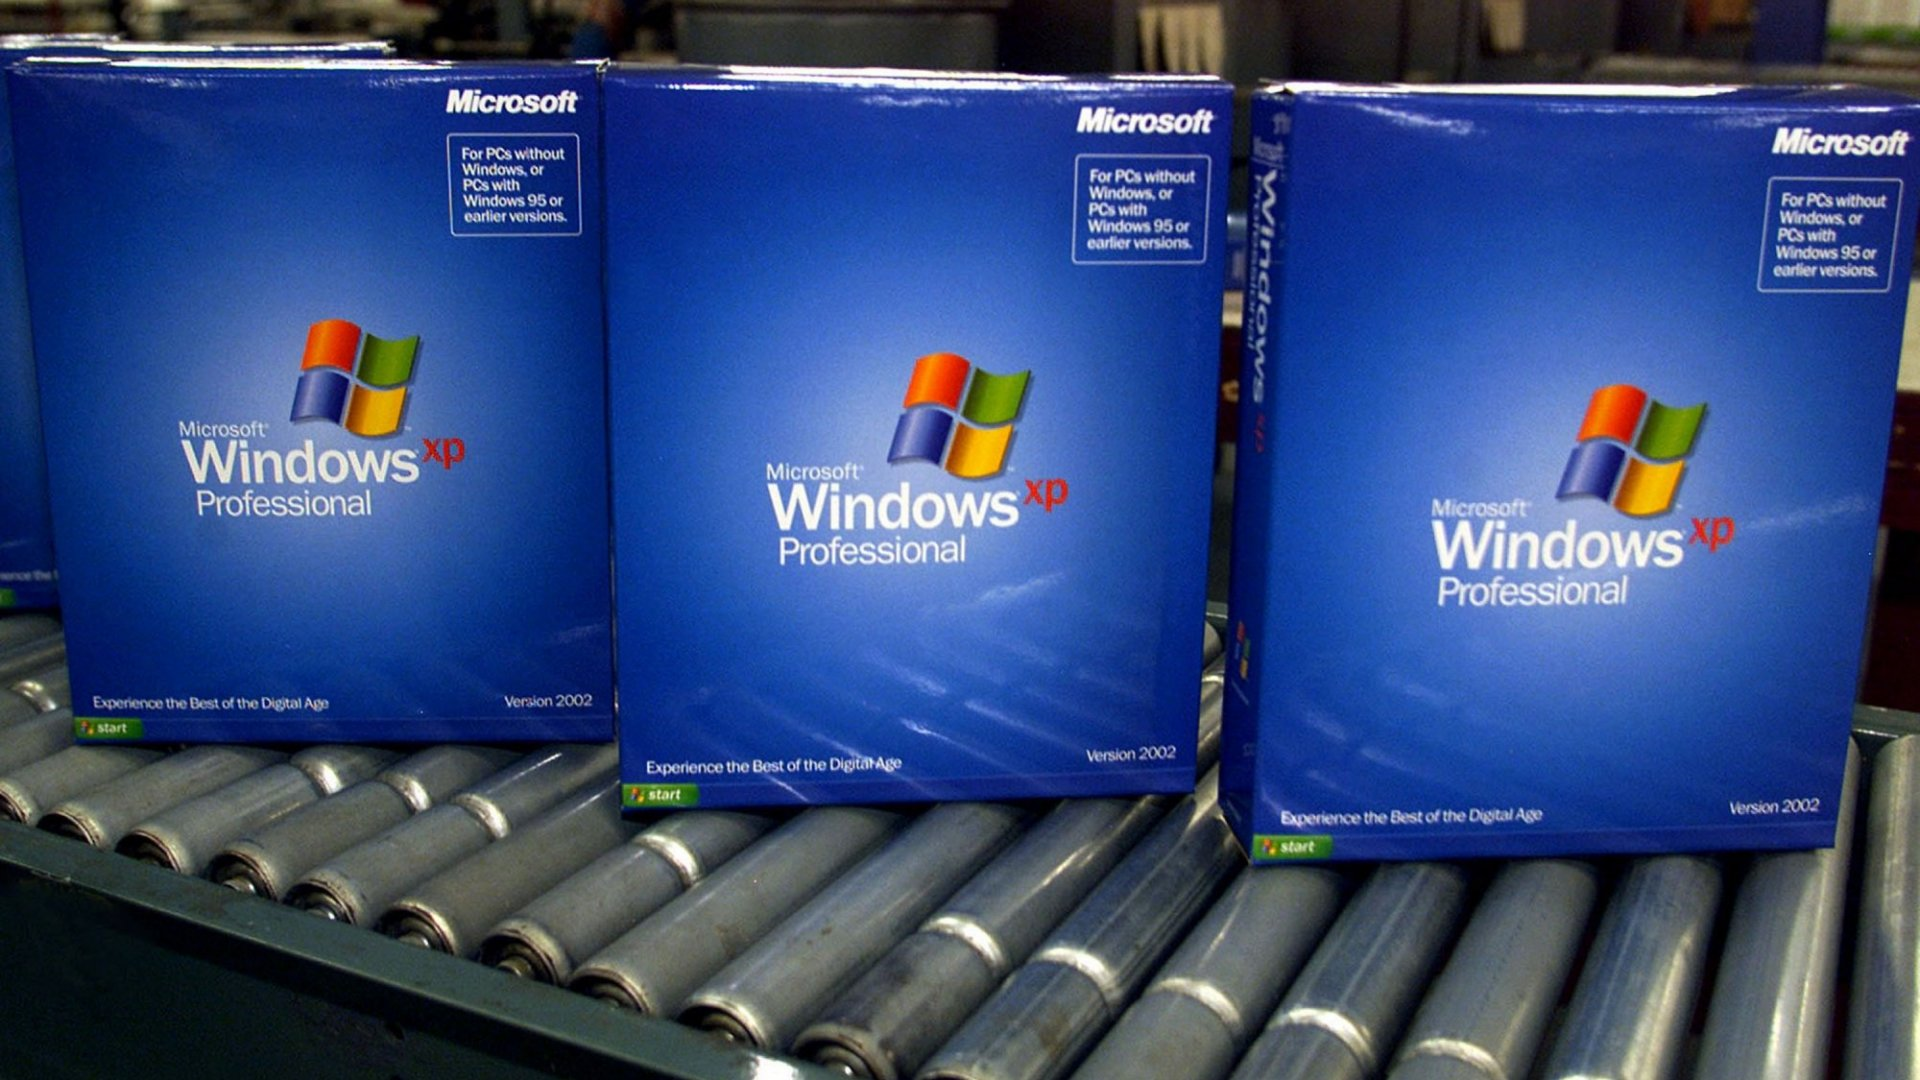 Microsoft Has Ignored Windows XP for Years. This New Nasty Bug Could Wreak Havoc on Millions of Users